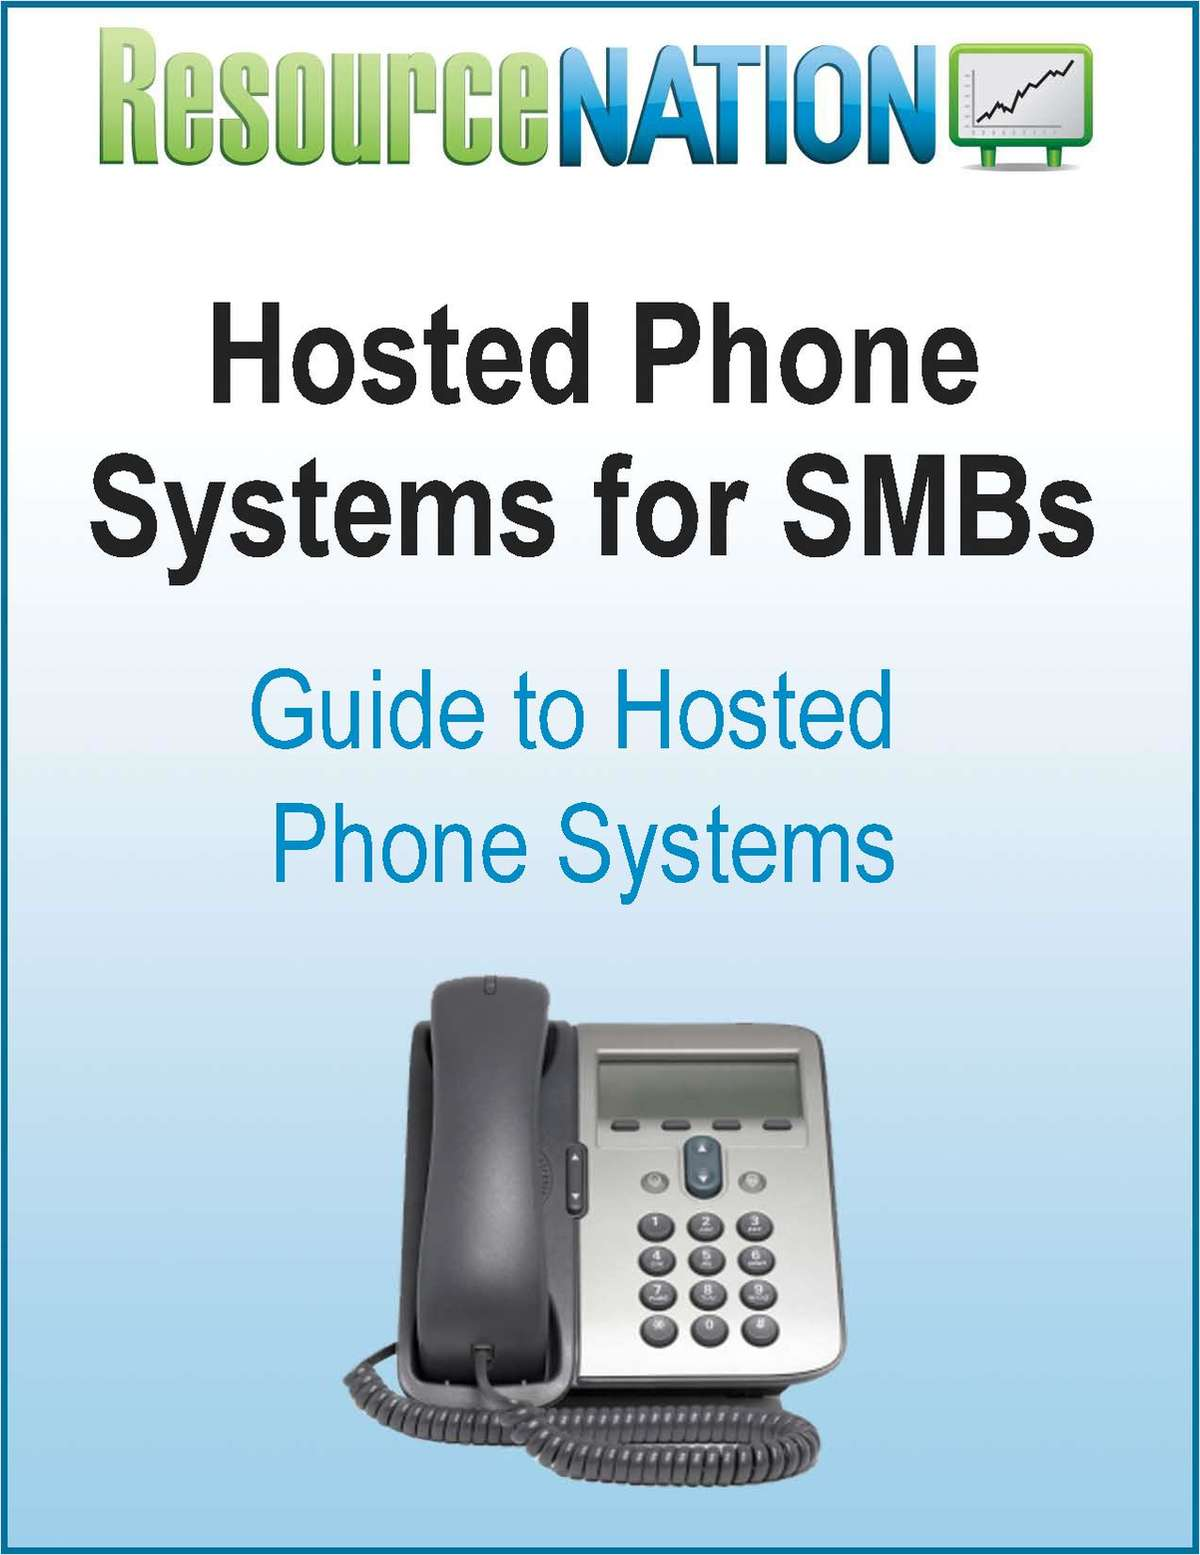 How To Choose The Best Hosted Phone System For Your SMB